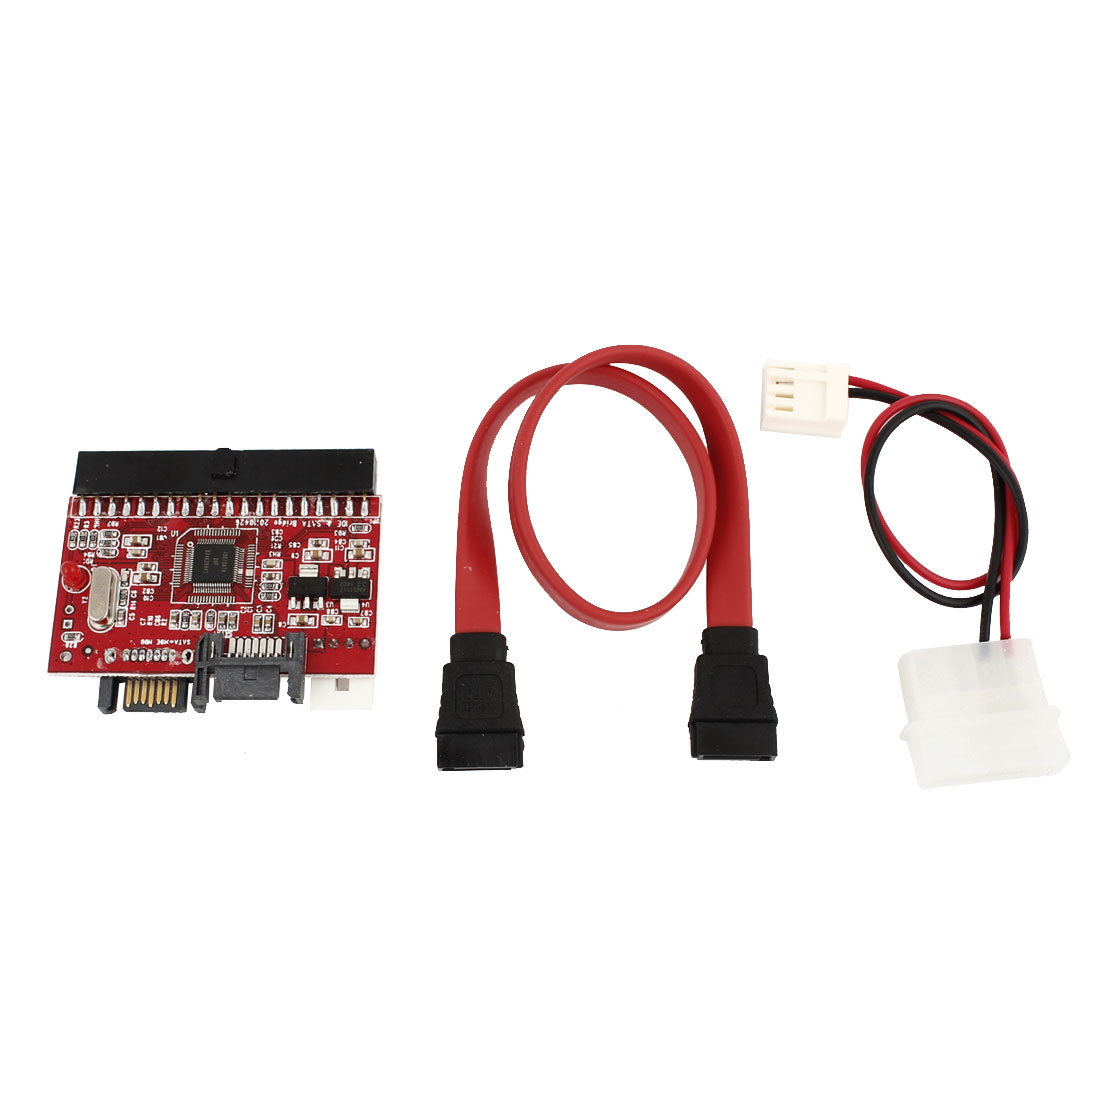 Bidirectional 2 Way IDE to SATA/SATA to IDE Adapter Red for Computer